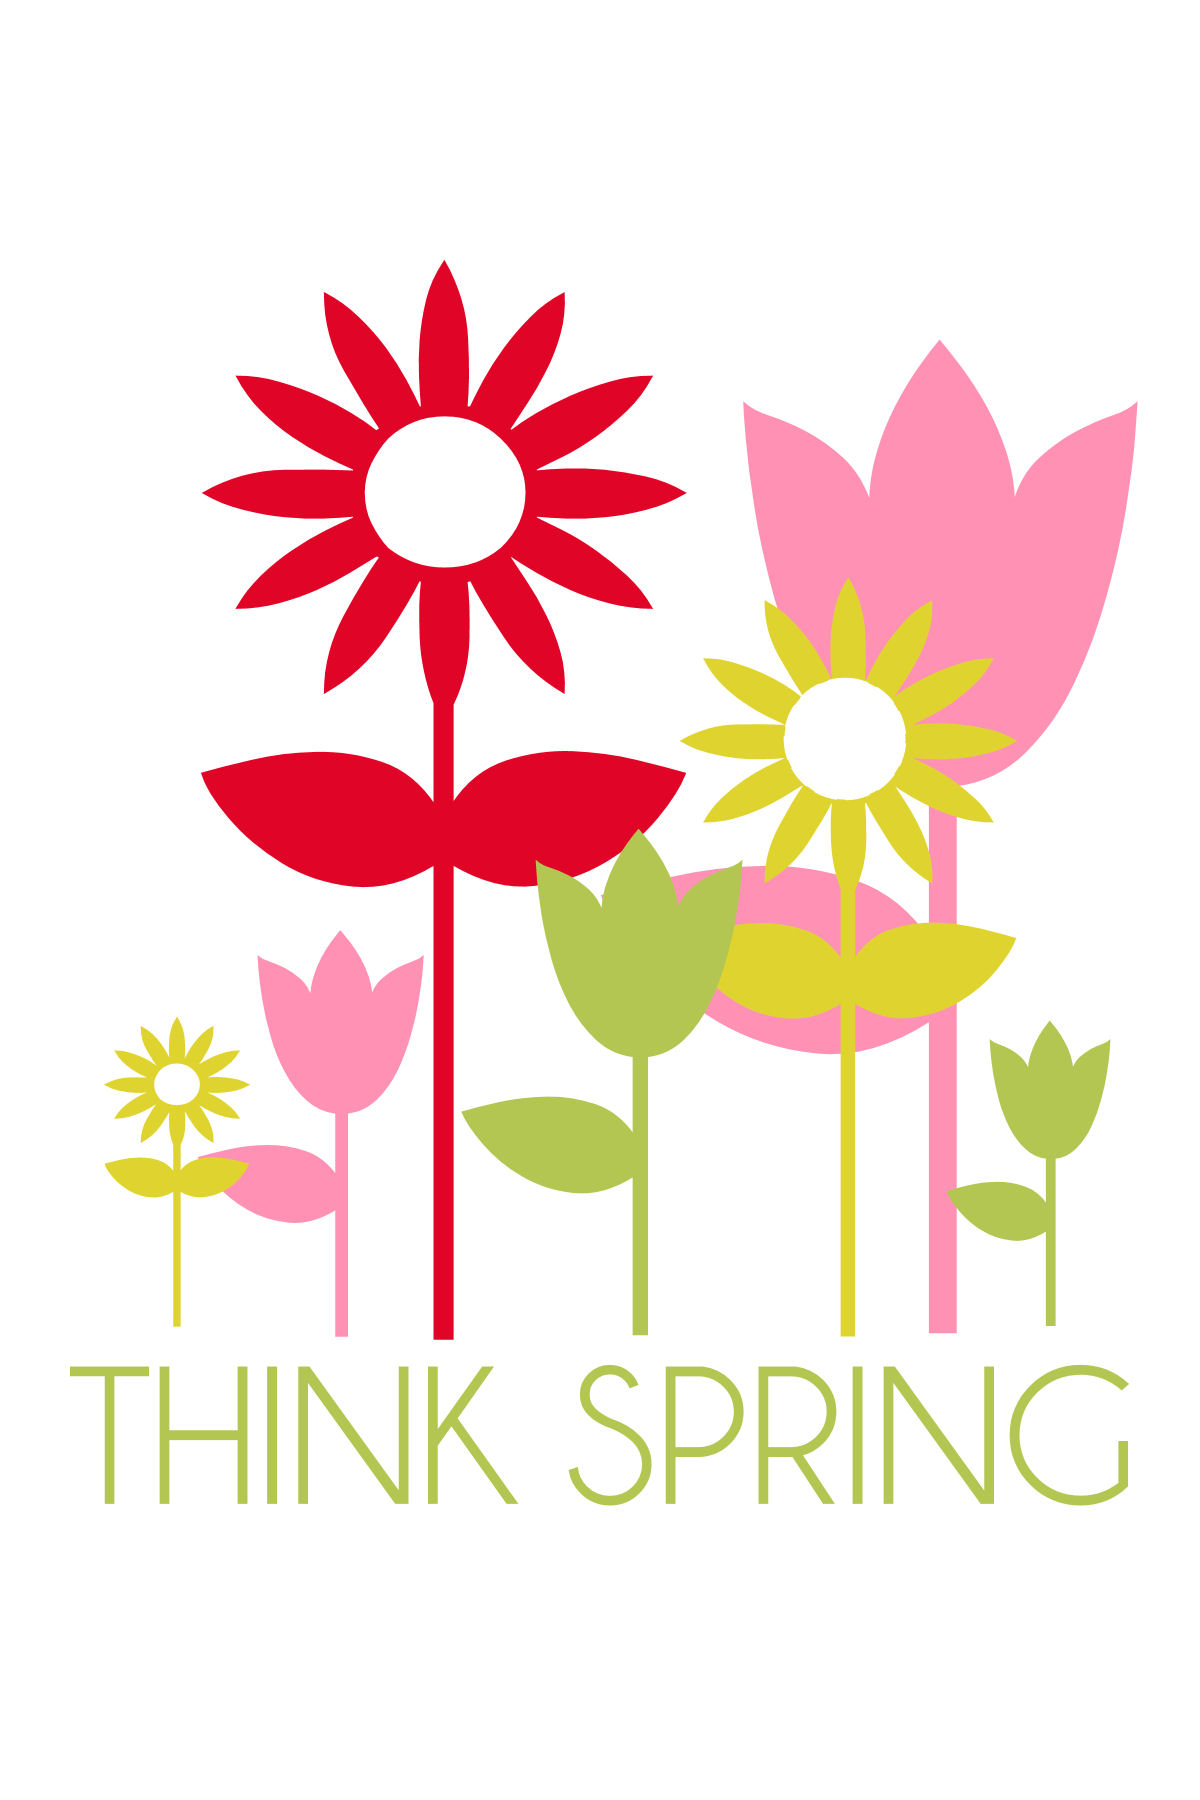 ... clip art art design and craft; think spring print 2 think spring free print on lilluna com put in a frame ...